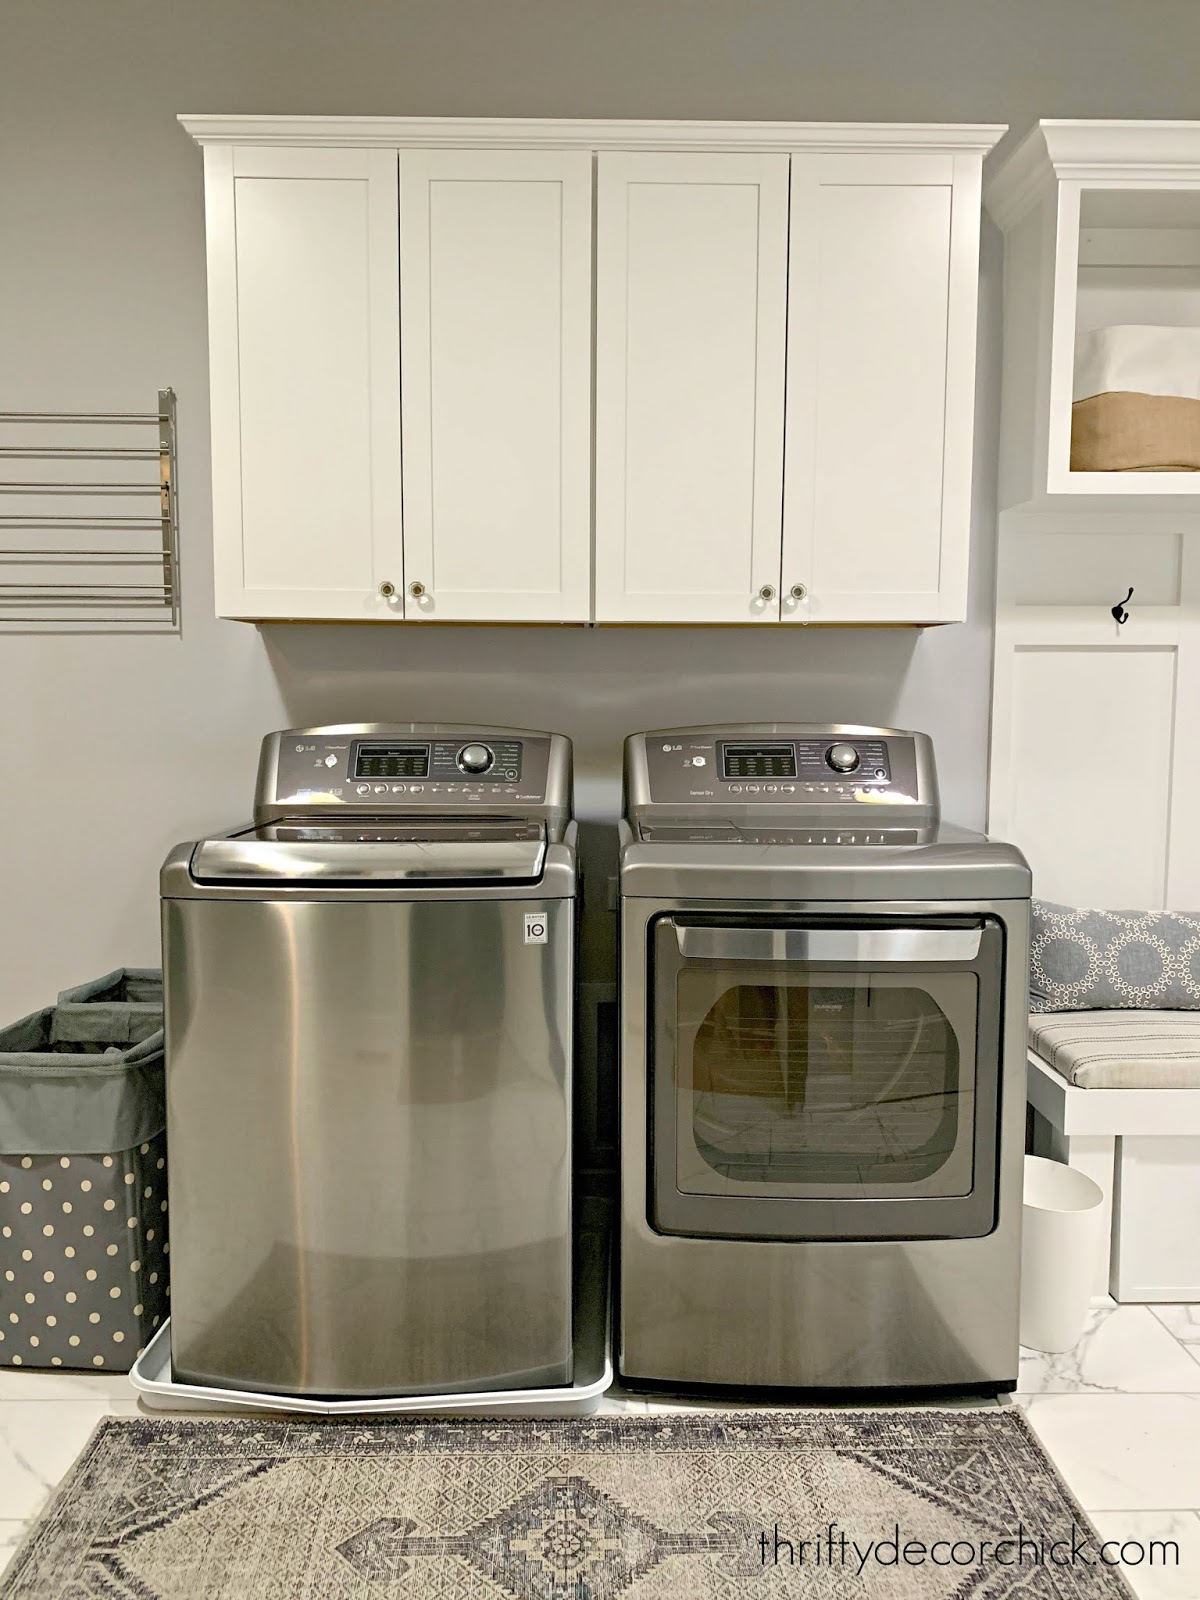 Top loader LG washer review